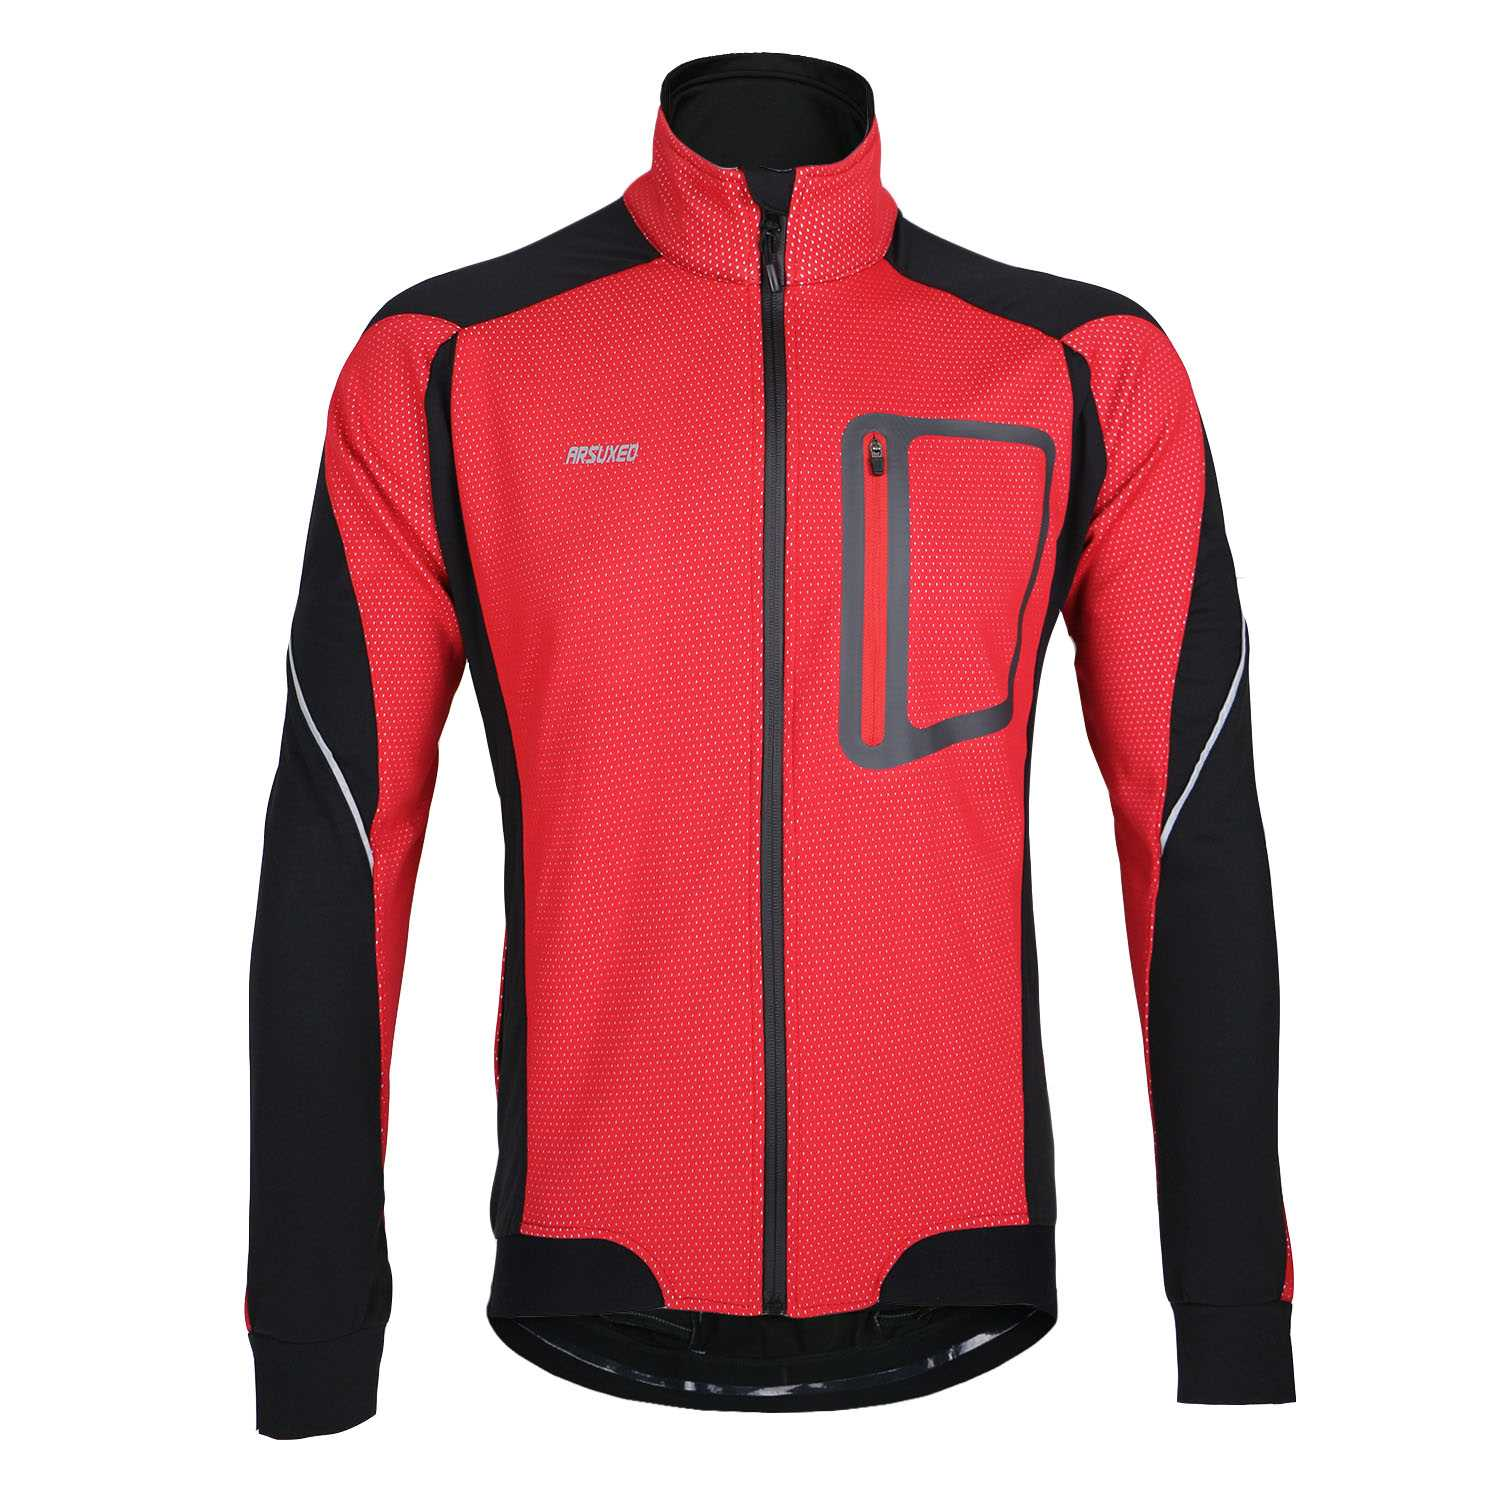 ФОТО ARSUXEO Outdoor Sports MTB Cycling Road Mountain Clothes Bike Bicycle Fleece Jersey Long Sleeve Clothing